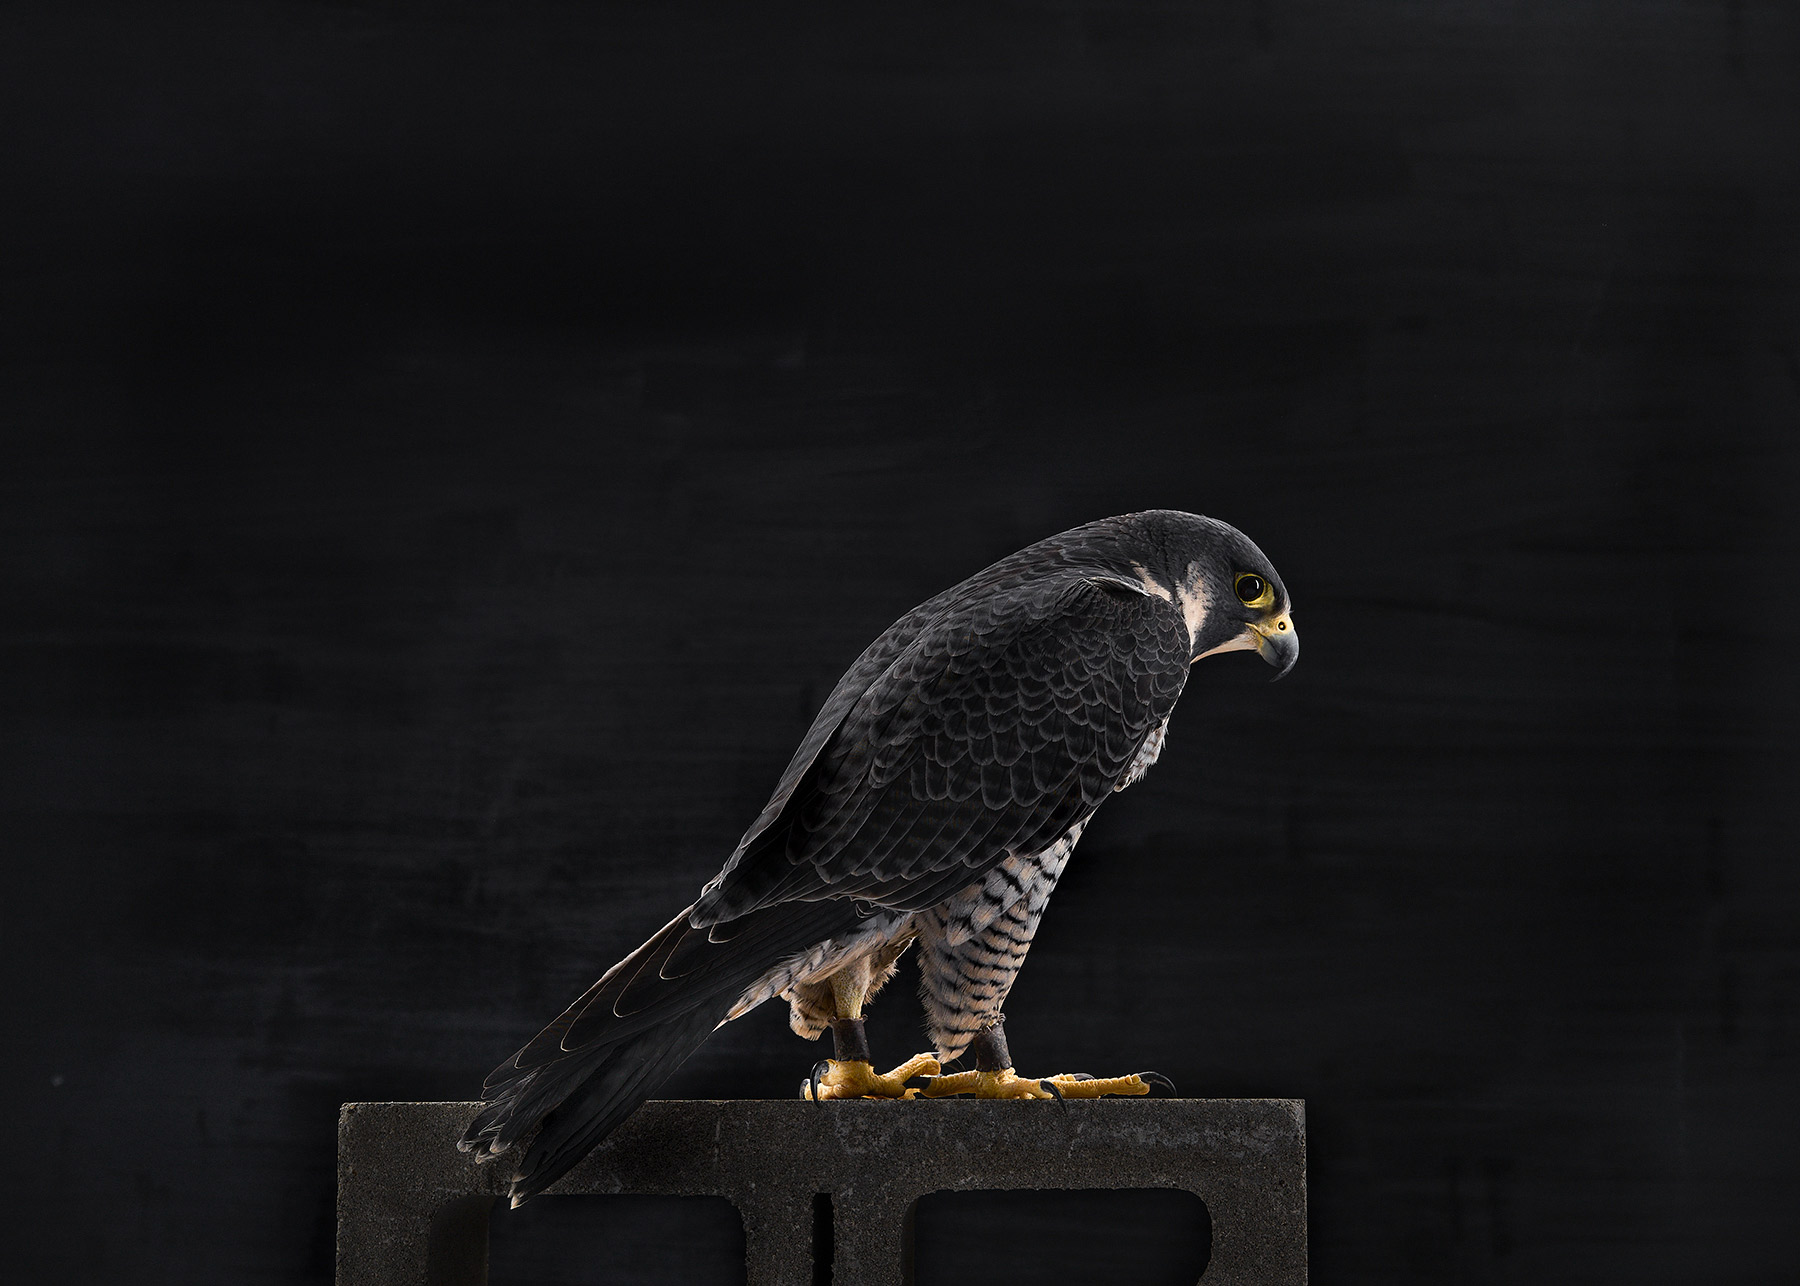 A-studio-portrait-of-a-Peregrine-Falcon-against-a-black-background